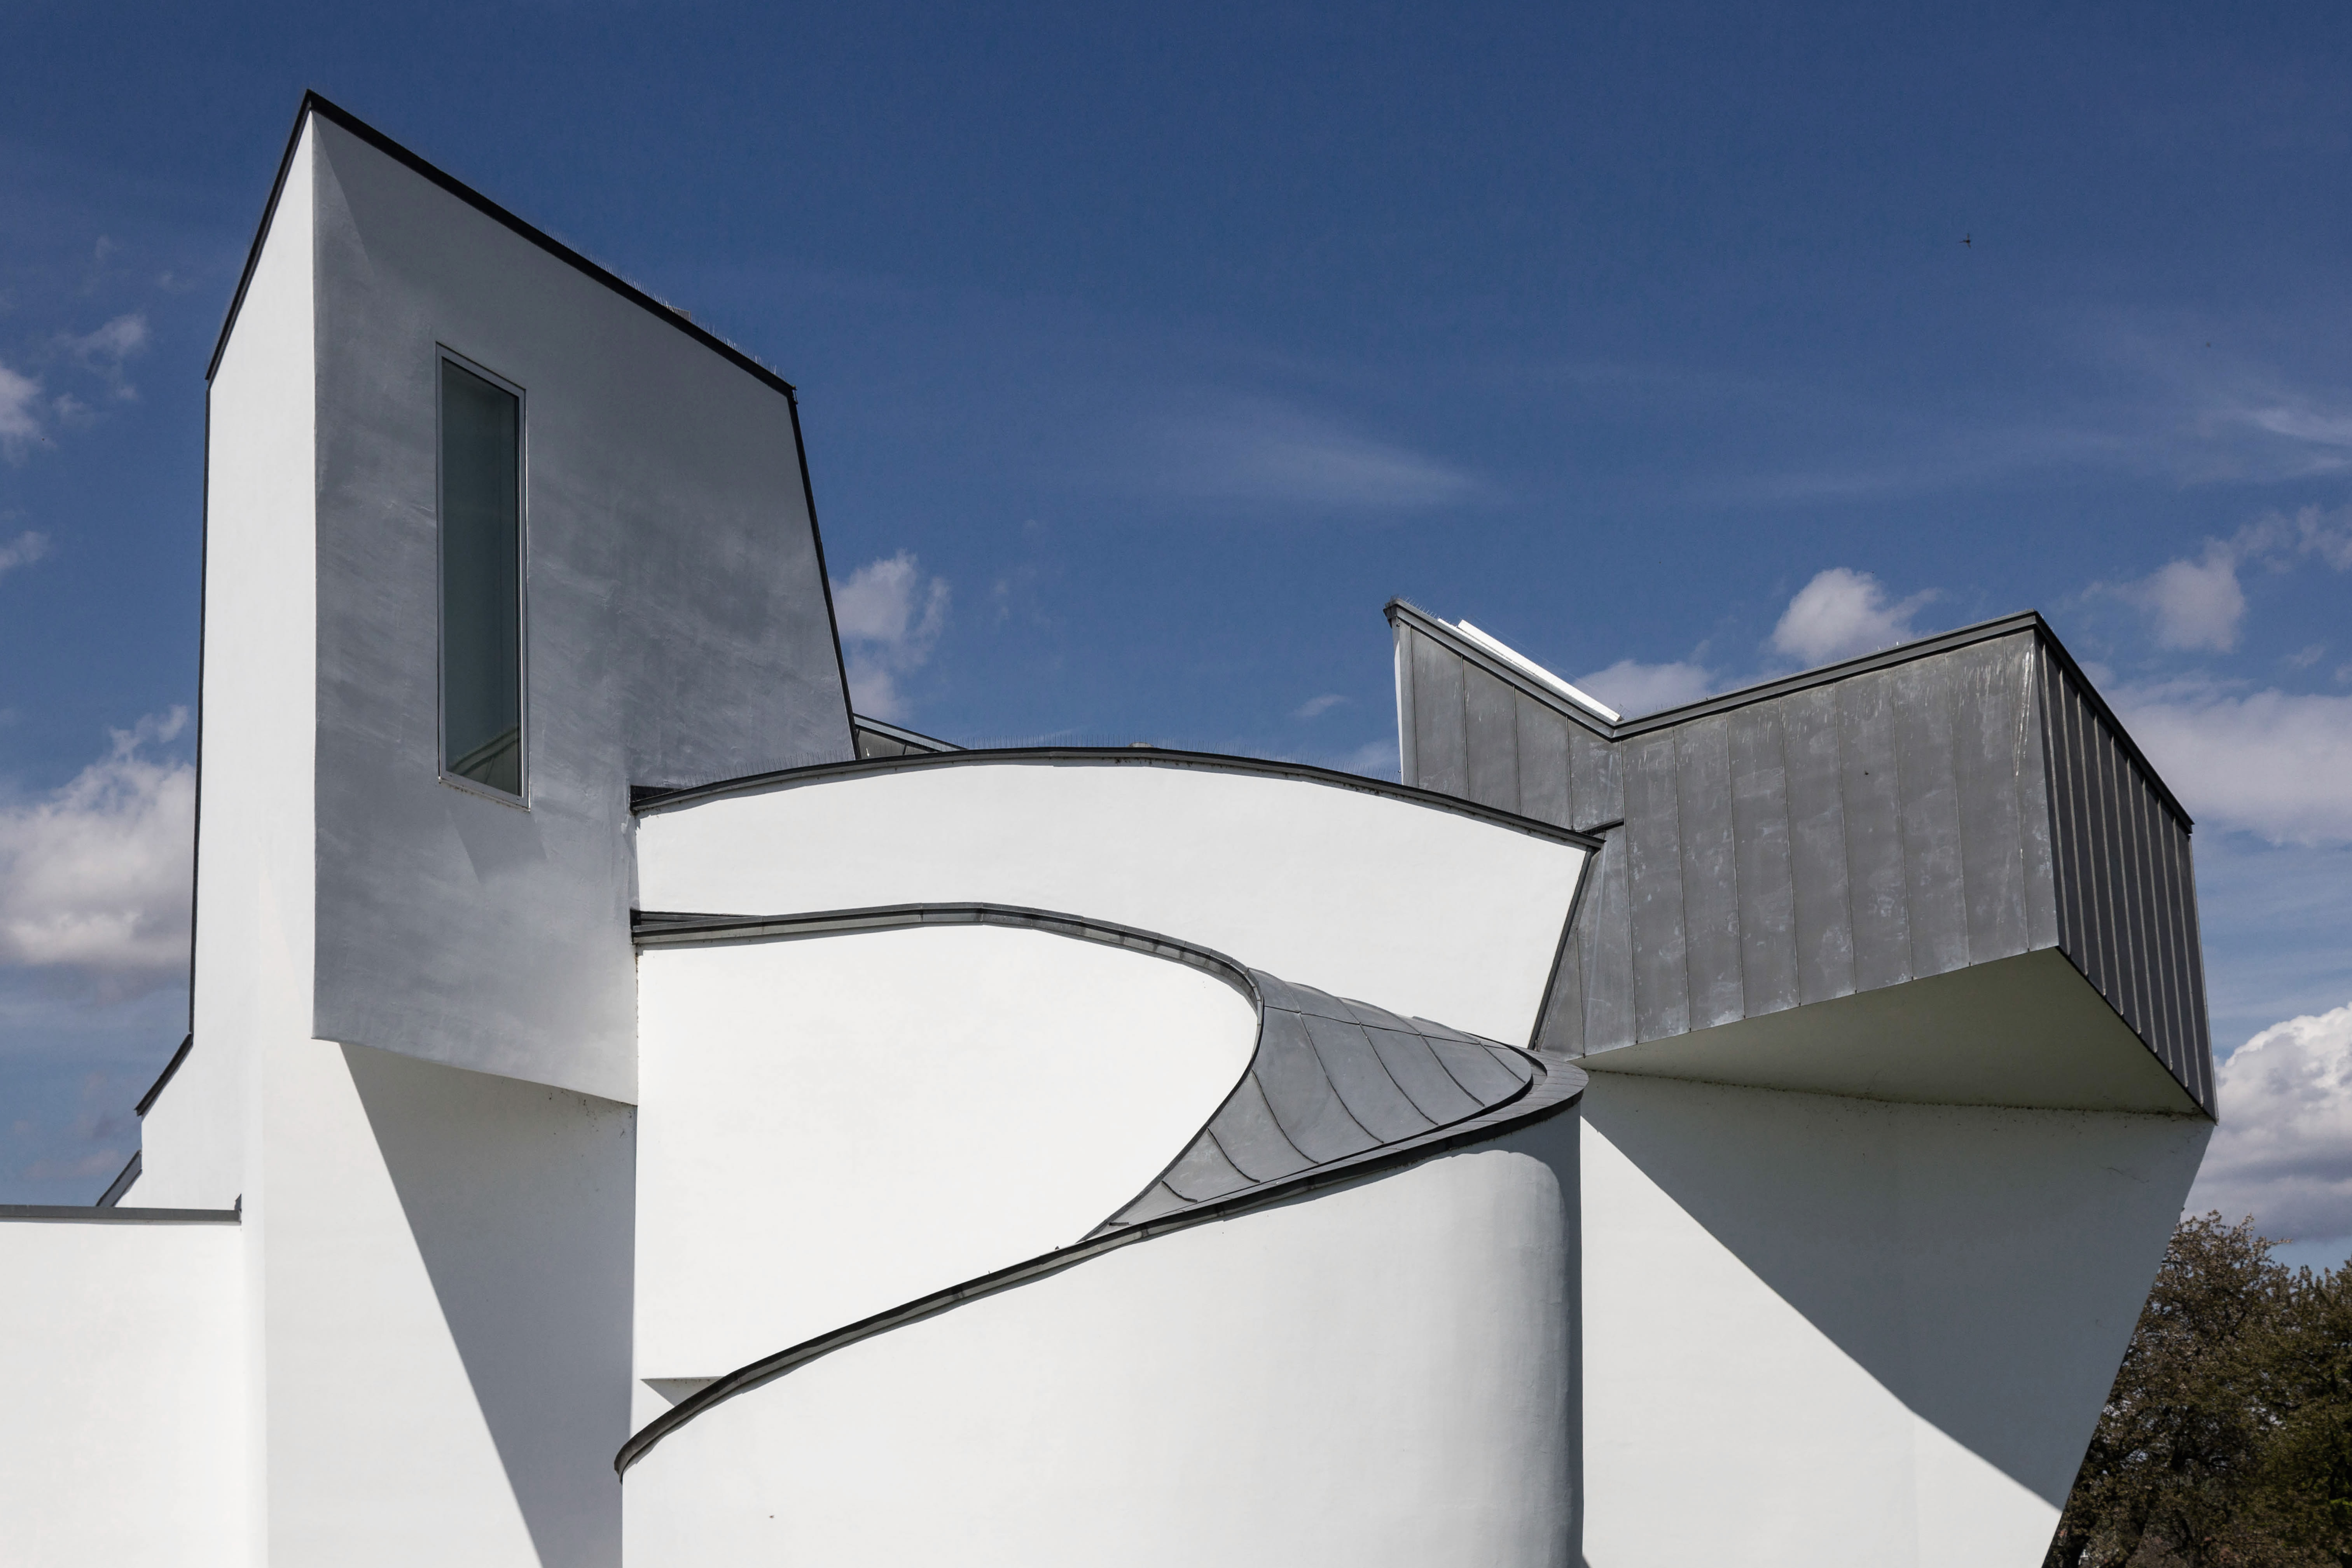 frank gehry, diego laurino · vitra design museum | vitra campus圖片